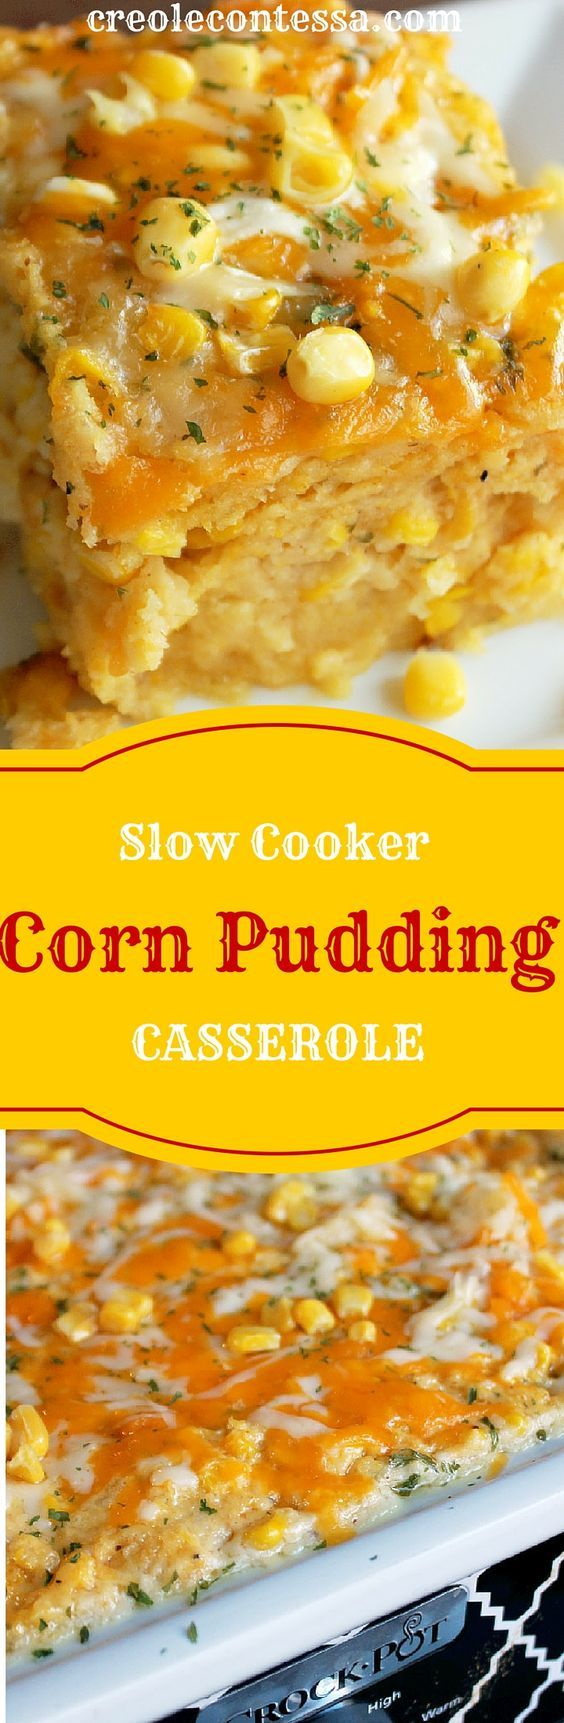 It's easy and delicious and takes about 5 minutes of prep work before it's slow cooker ready!: